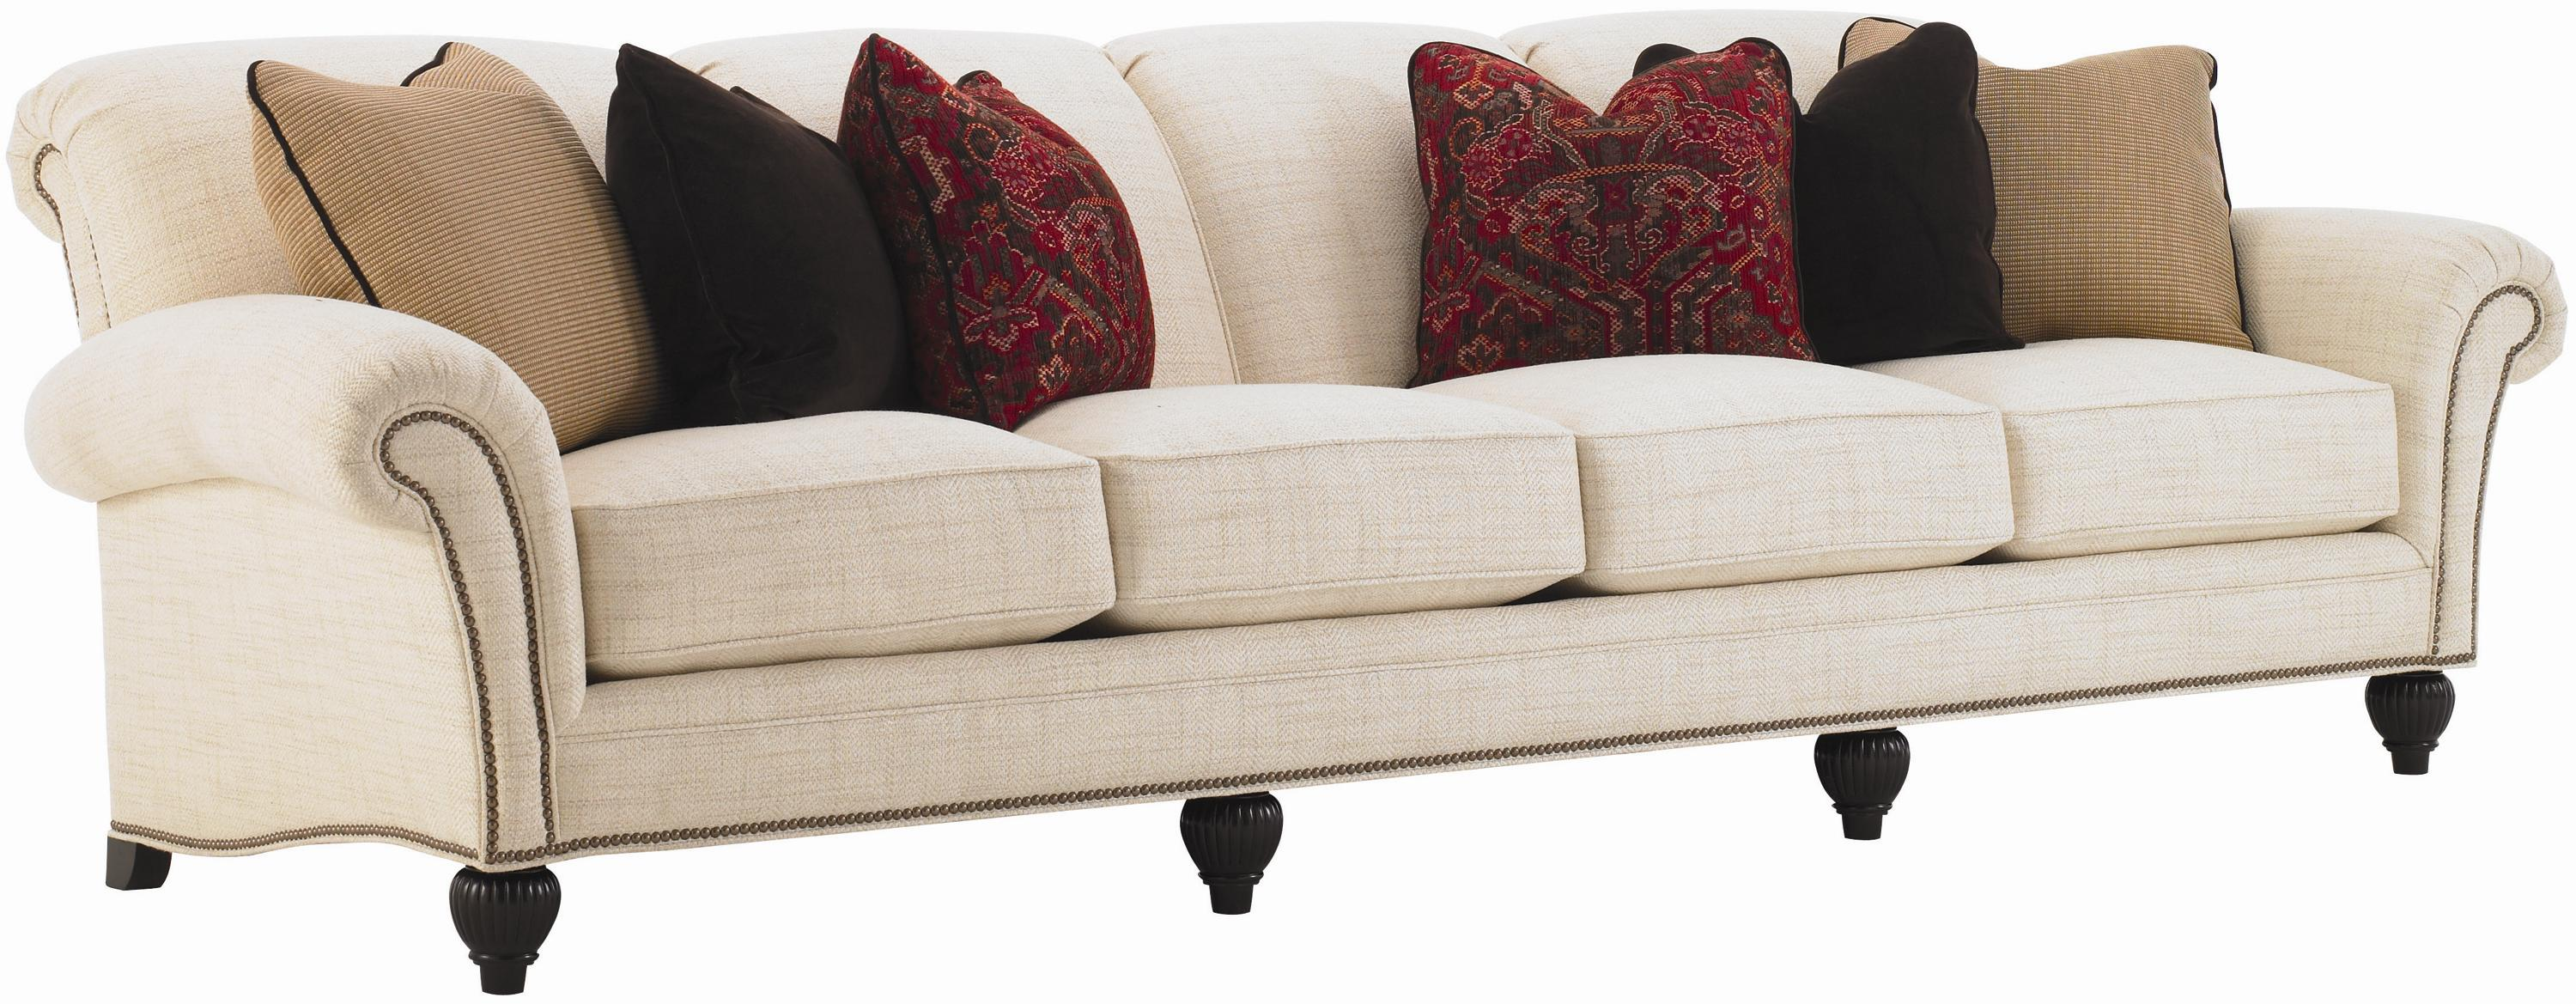 Royal Kahala Edgewater Extended Sofa by Tommy Bahama Home at Baer's Furniture